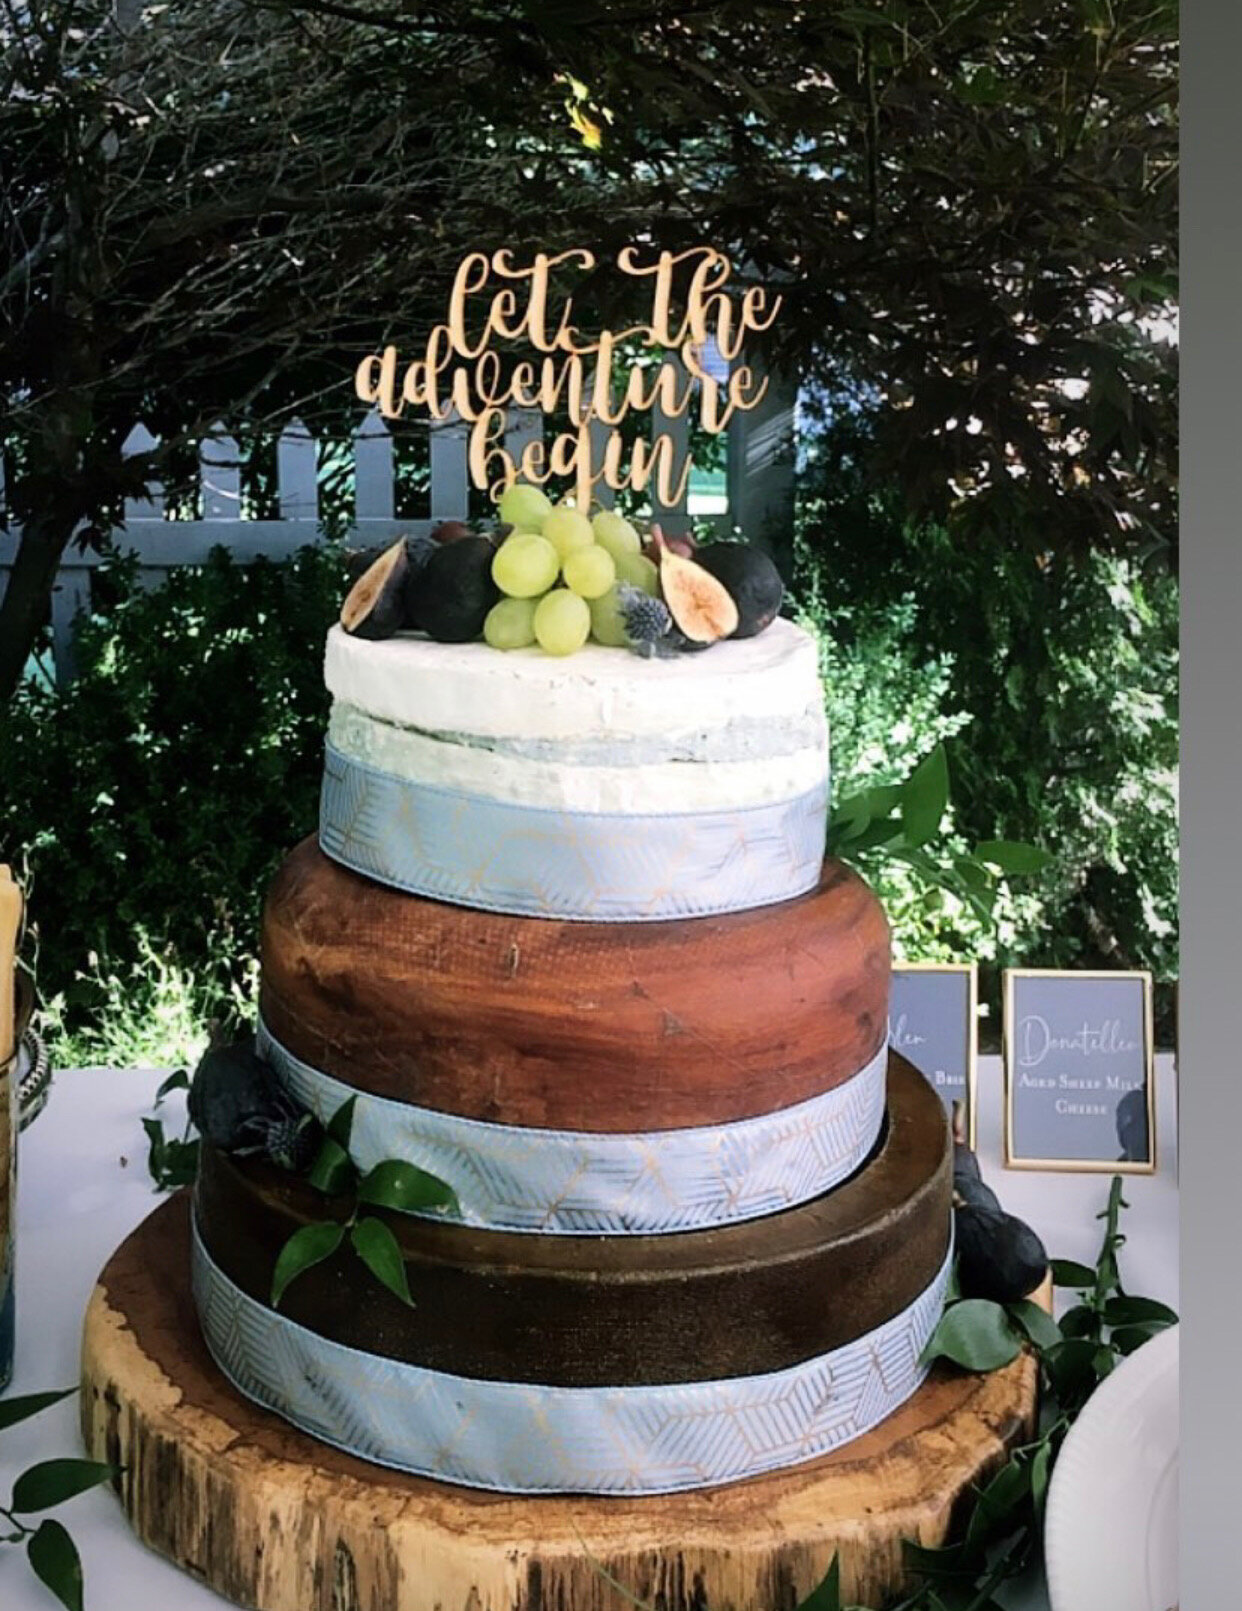 Serving cheese at a wedding. An alternative cake for a wedding